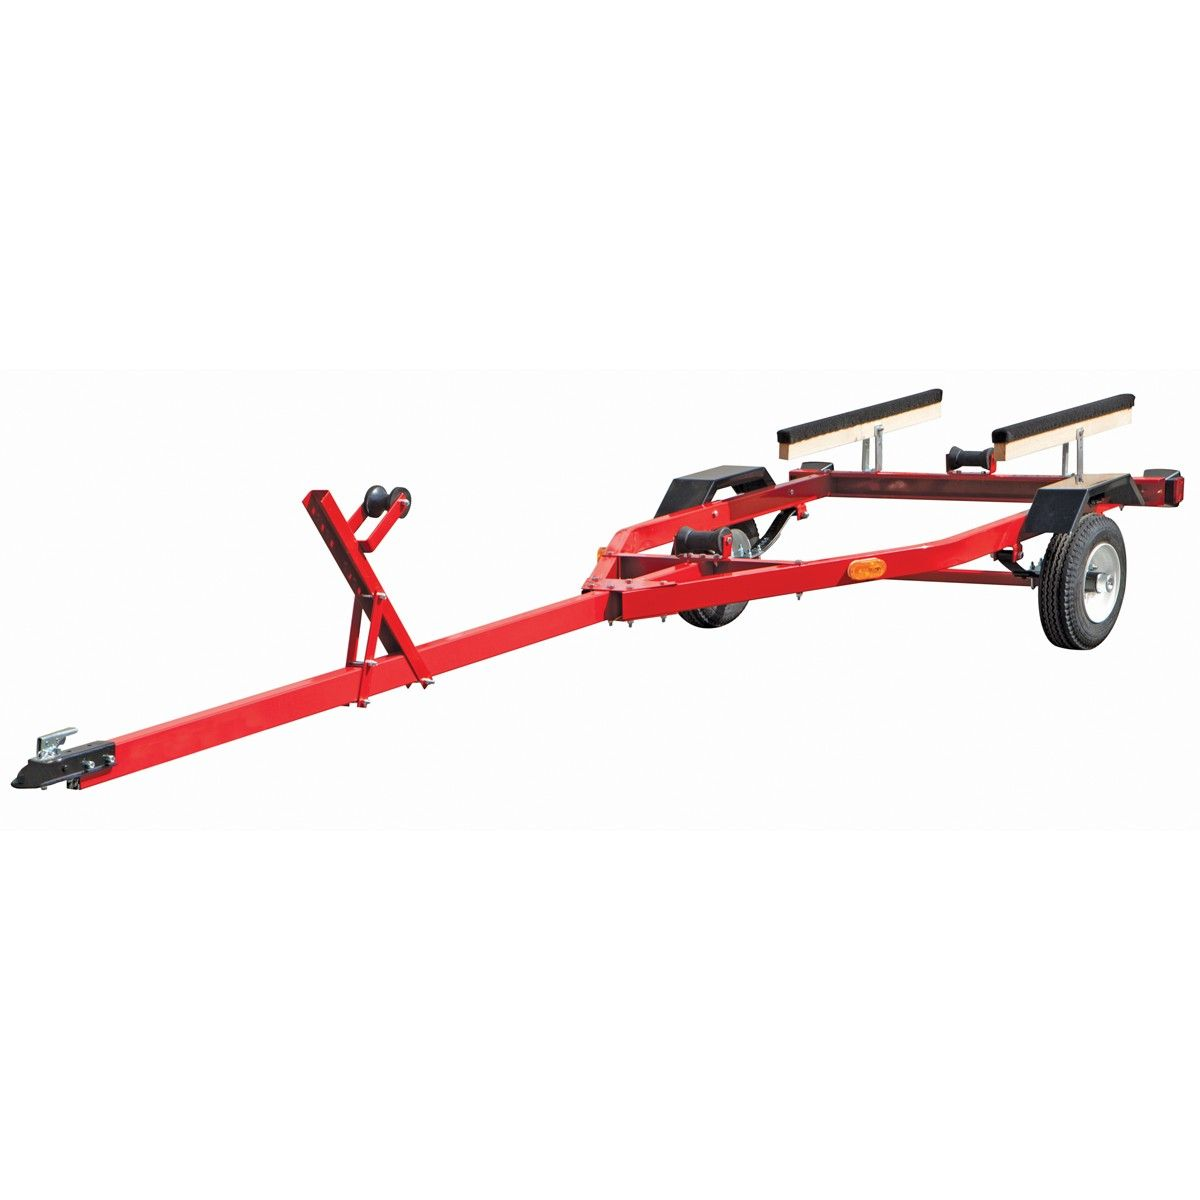 600 lbs capacity boat trailer my kayak pinterest for Outboard motor dolly harbor freight